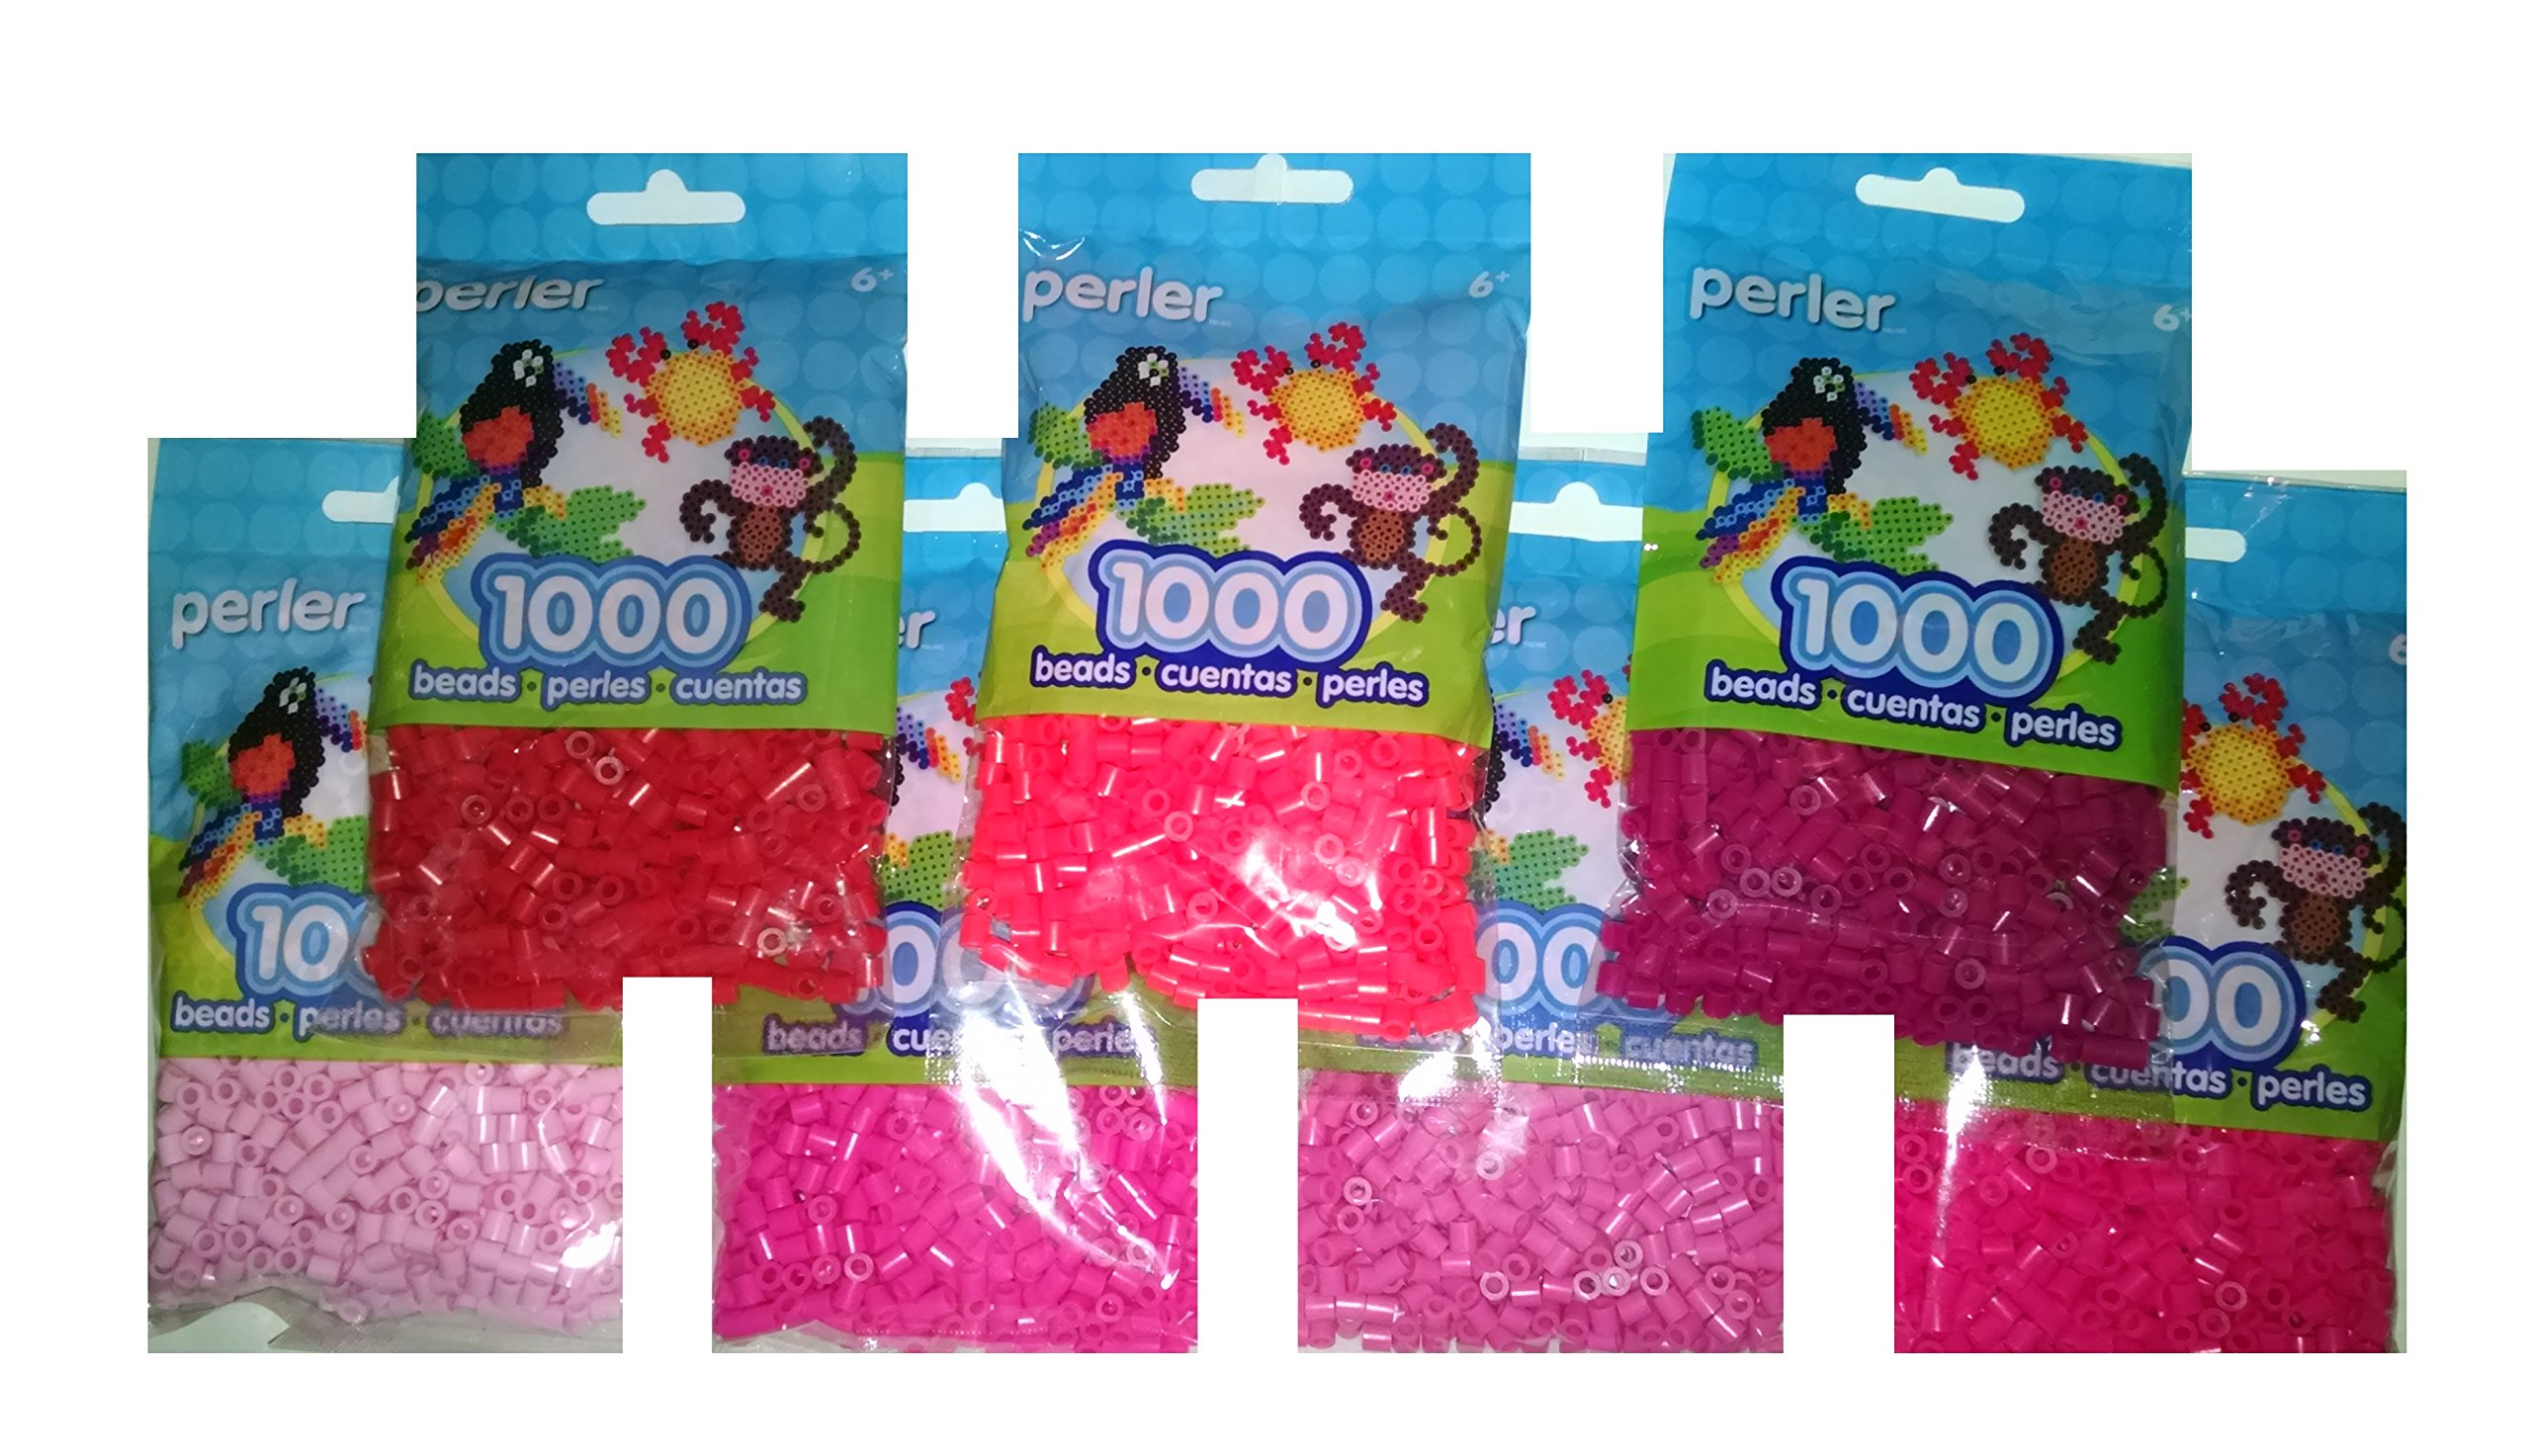 Perler Bead Bag, 7 Pack Group (Red, Pink, L. Pink, Raspberry, Bubble Gum, Magenta, Hot Coral )